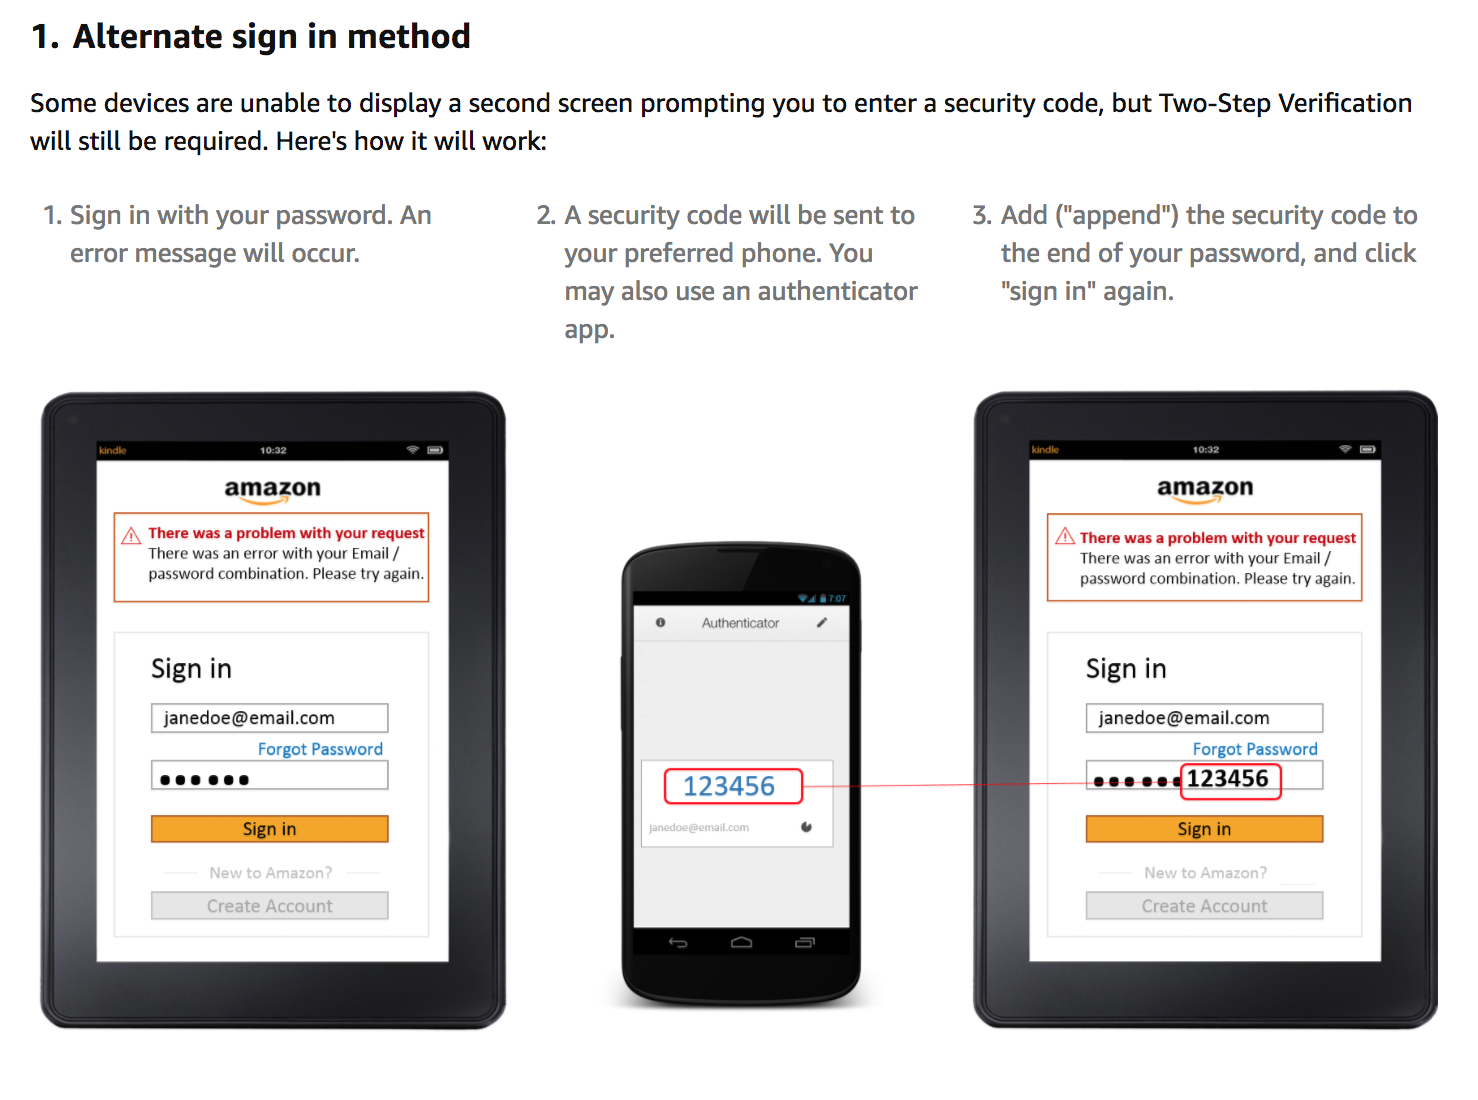 "Add (""append"") the security code to the end of your password, and click ""sign in"" again."